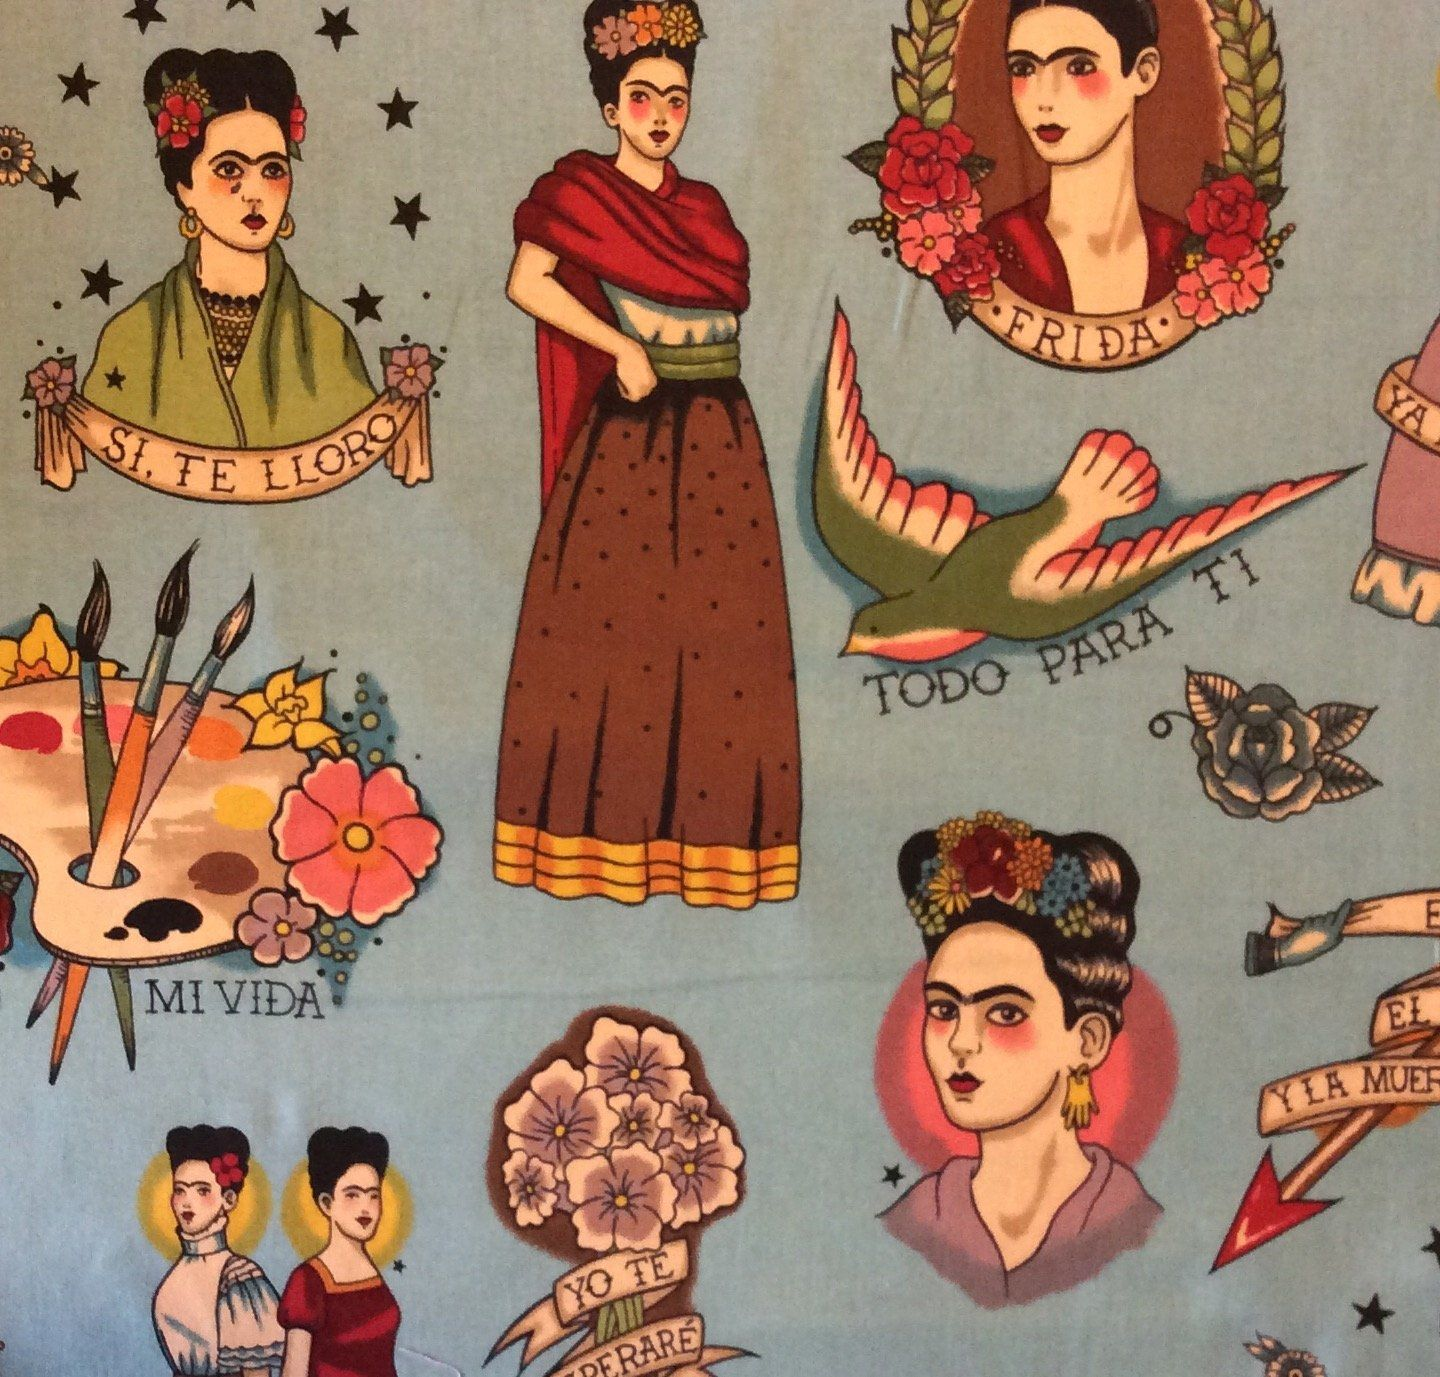 ed0777fd8 Frida Kahlo Mexico Art Viva Love Tattoo Painting Quilting Cotton Fabric  AH168